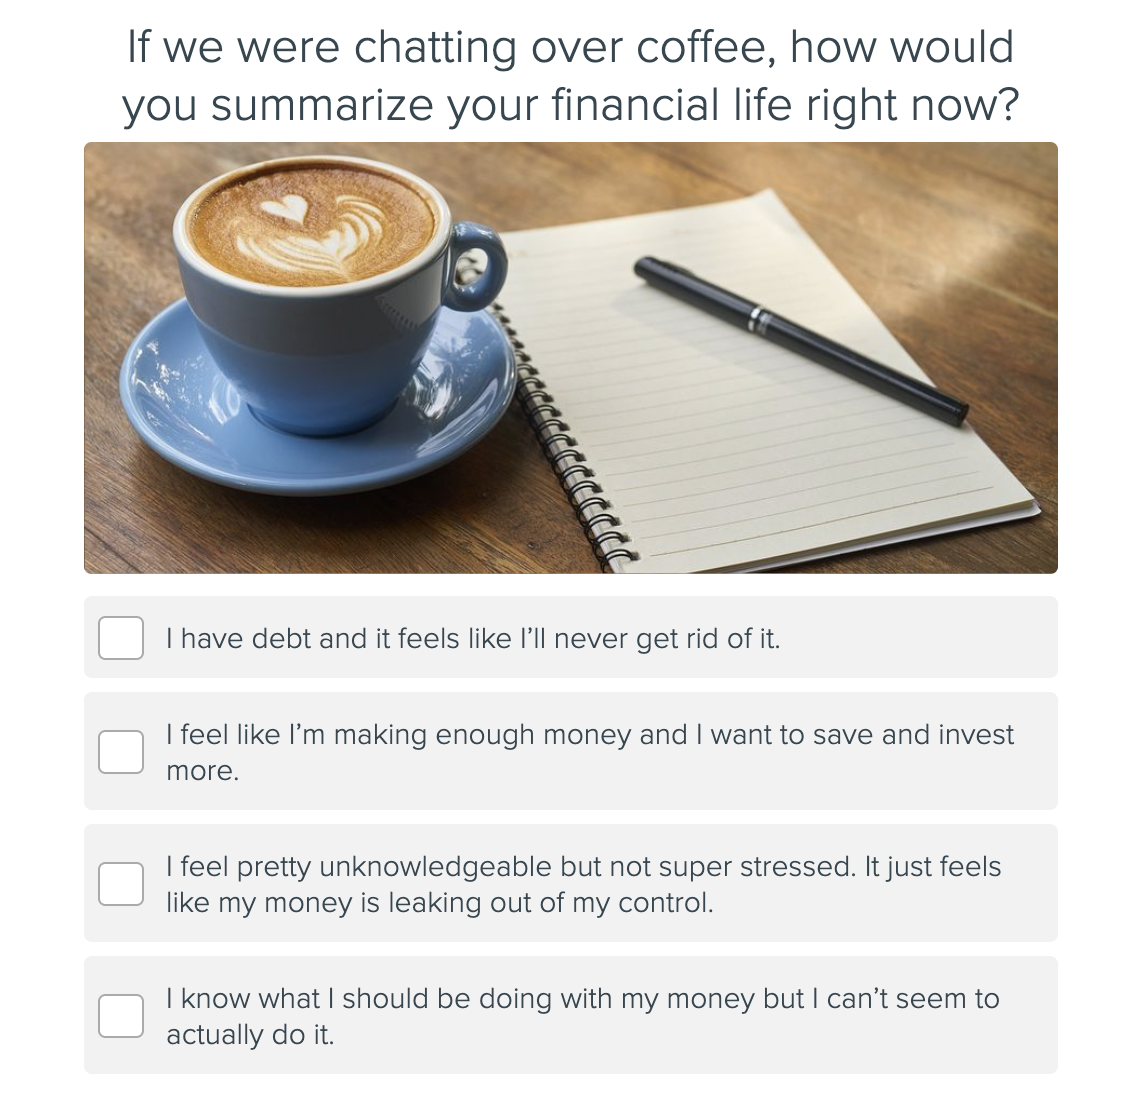 quiz question with cup of coffee